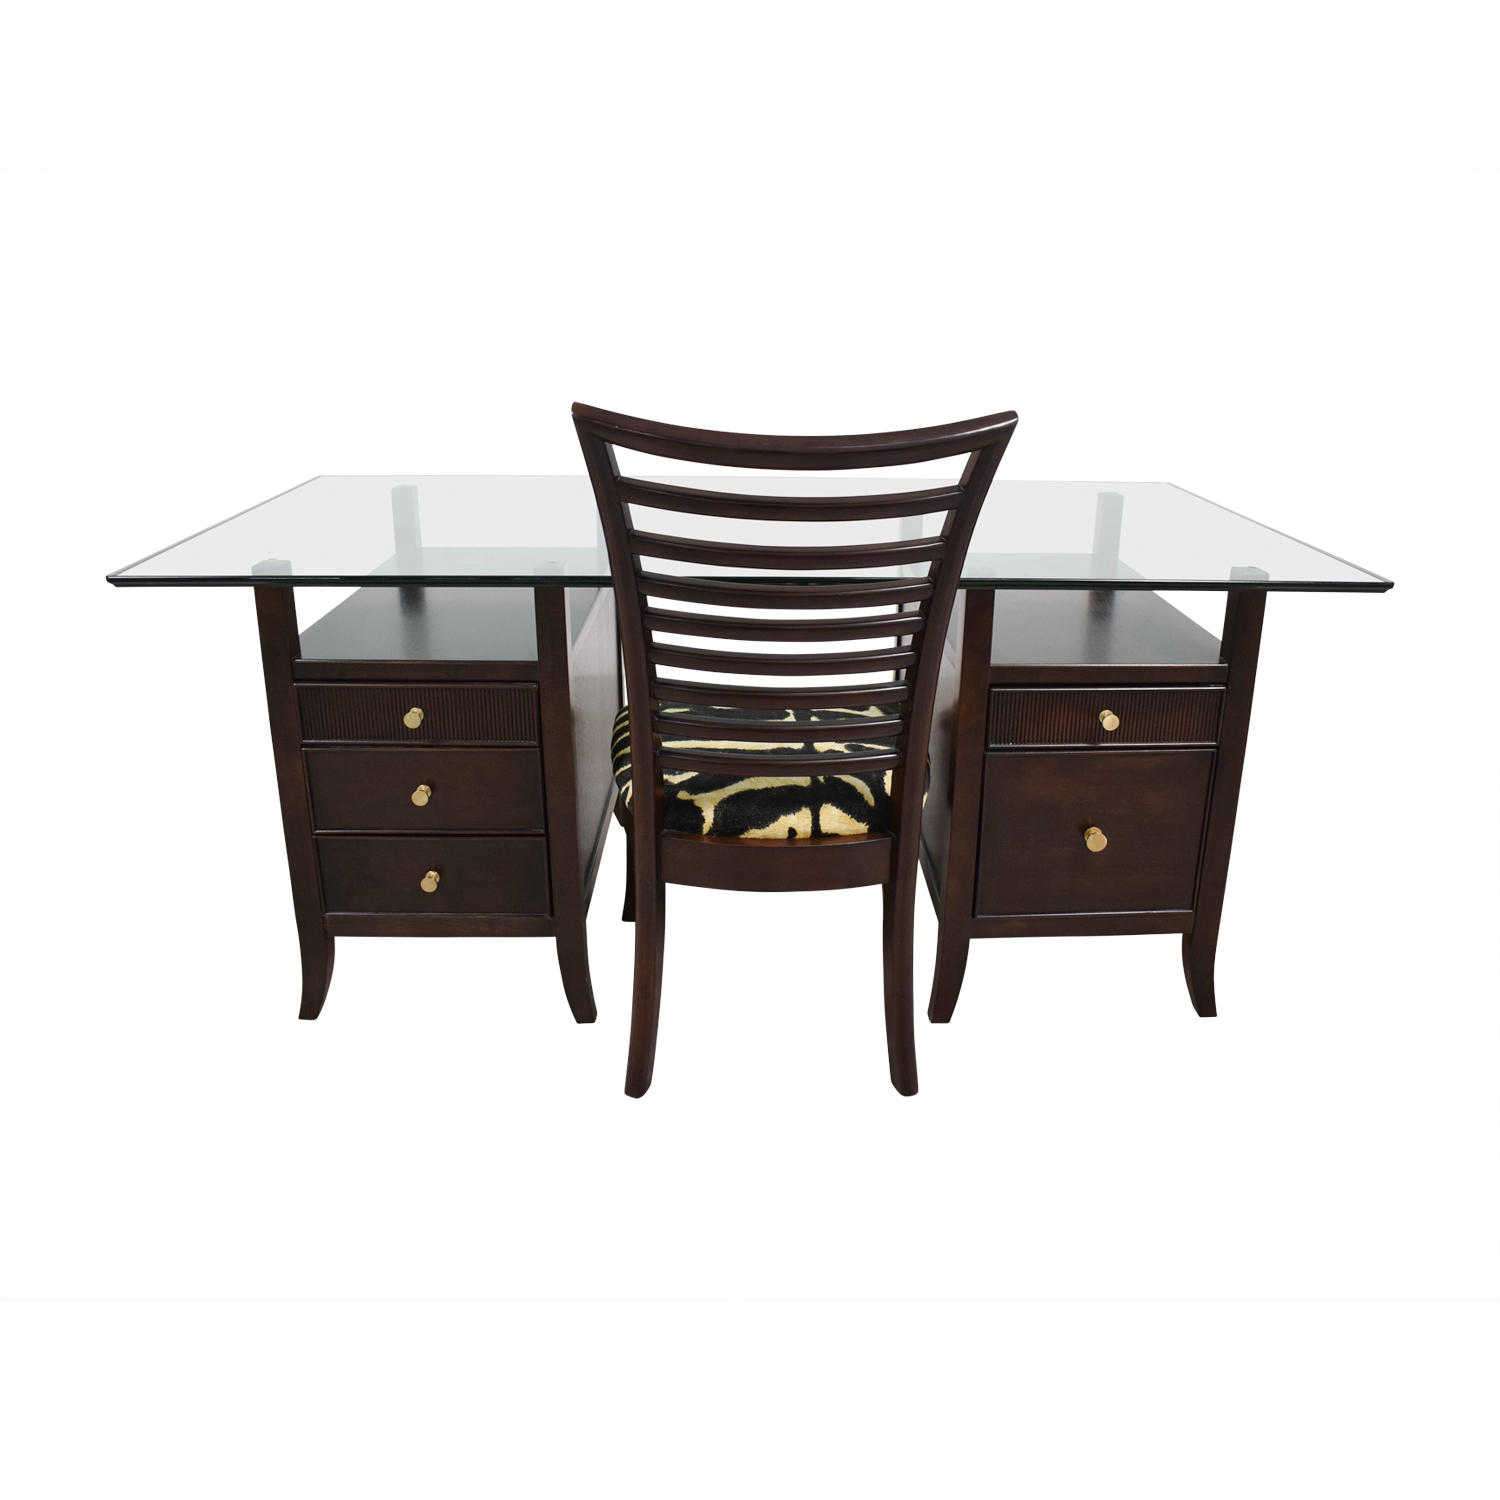 Stanley Furniture Stanley Furniture Midtown Glass Top Five-Drawer Desk with Chair on sale